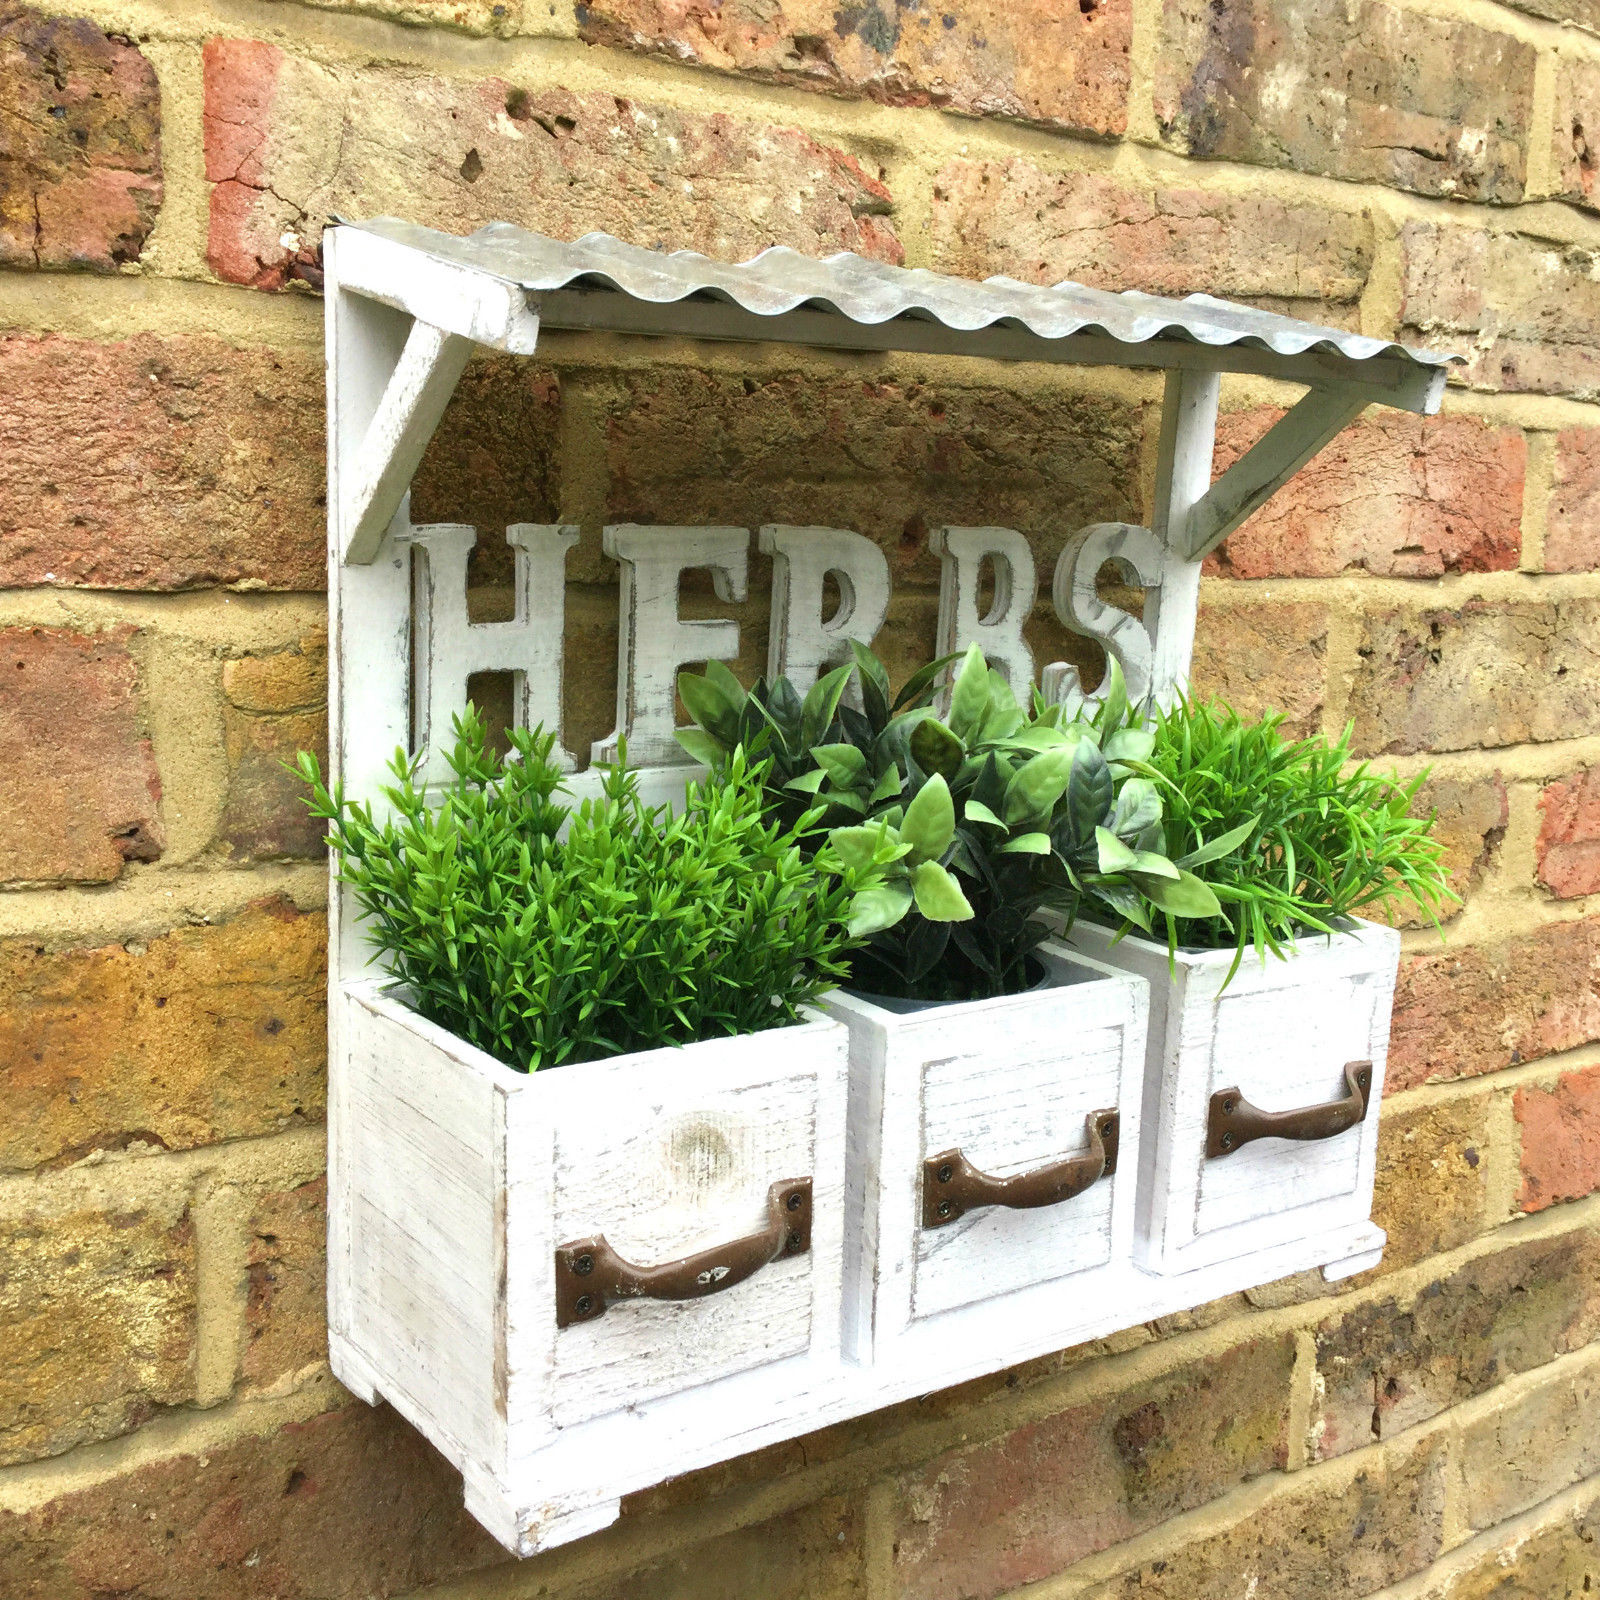 Bathroom Gift Basket Ideas Shabby Chic Vintage Style Wooden Wall Garden Planter Pots